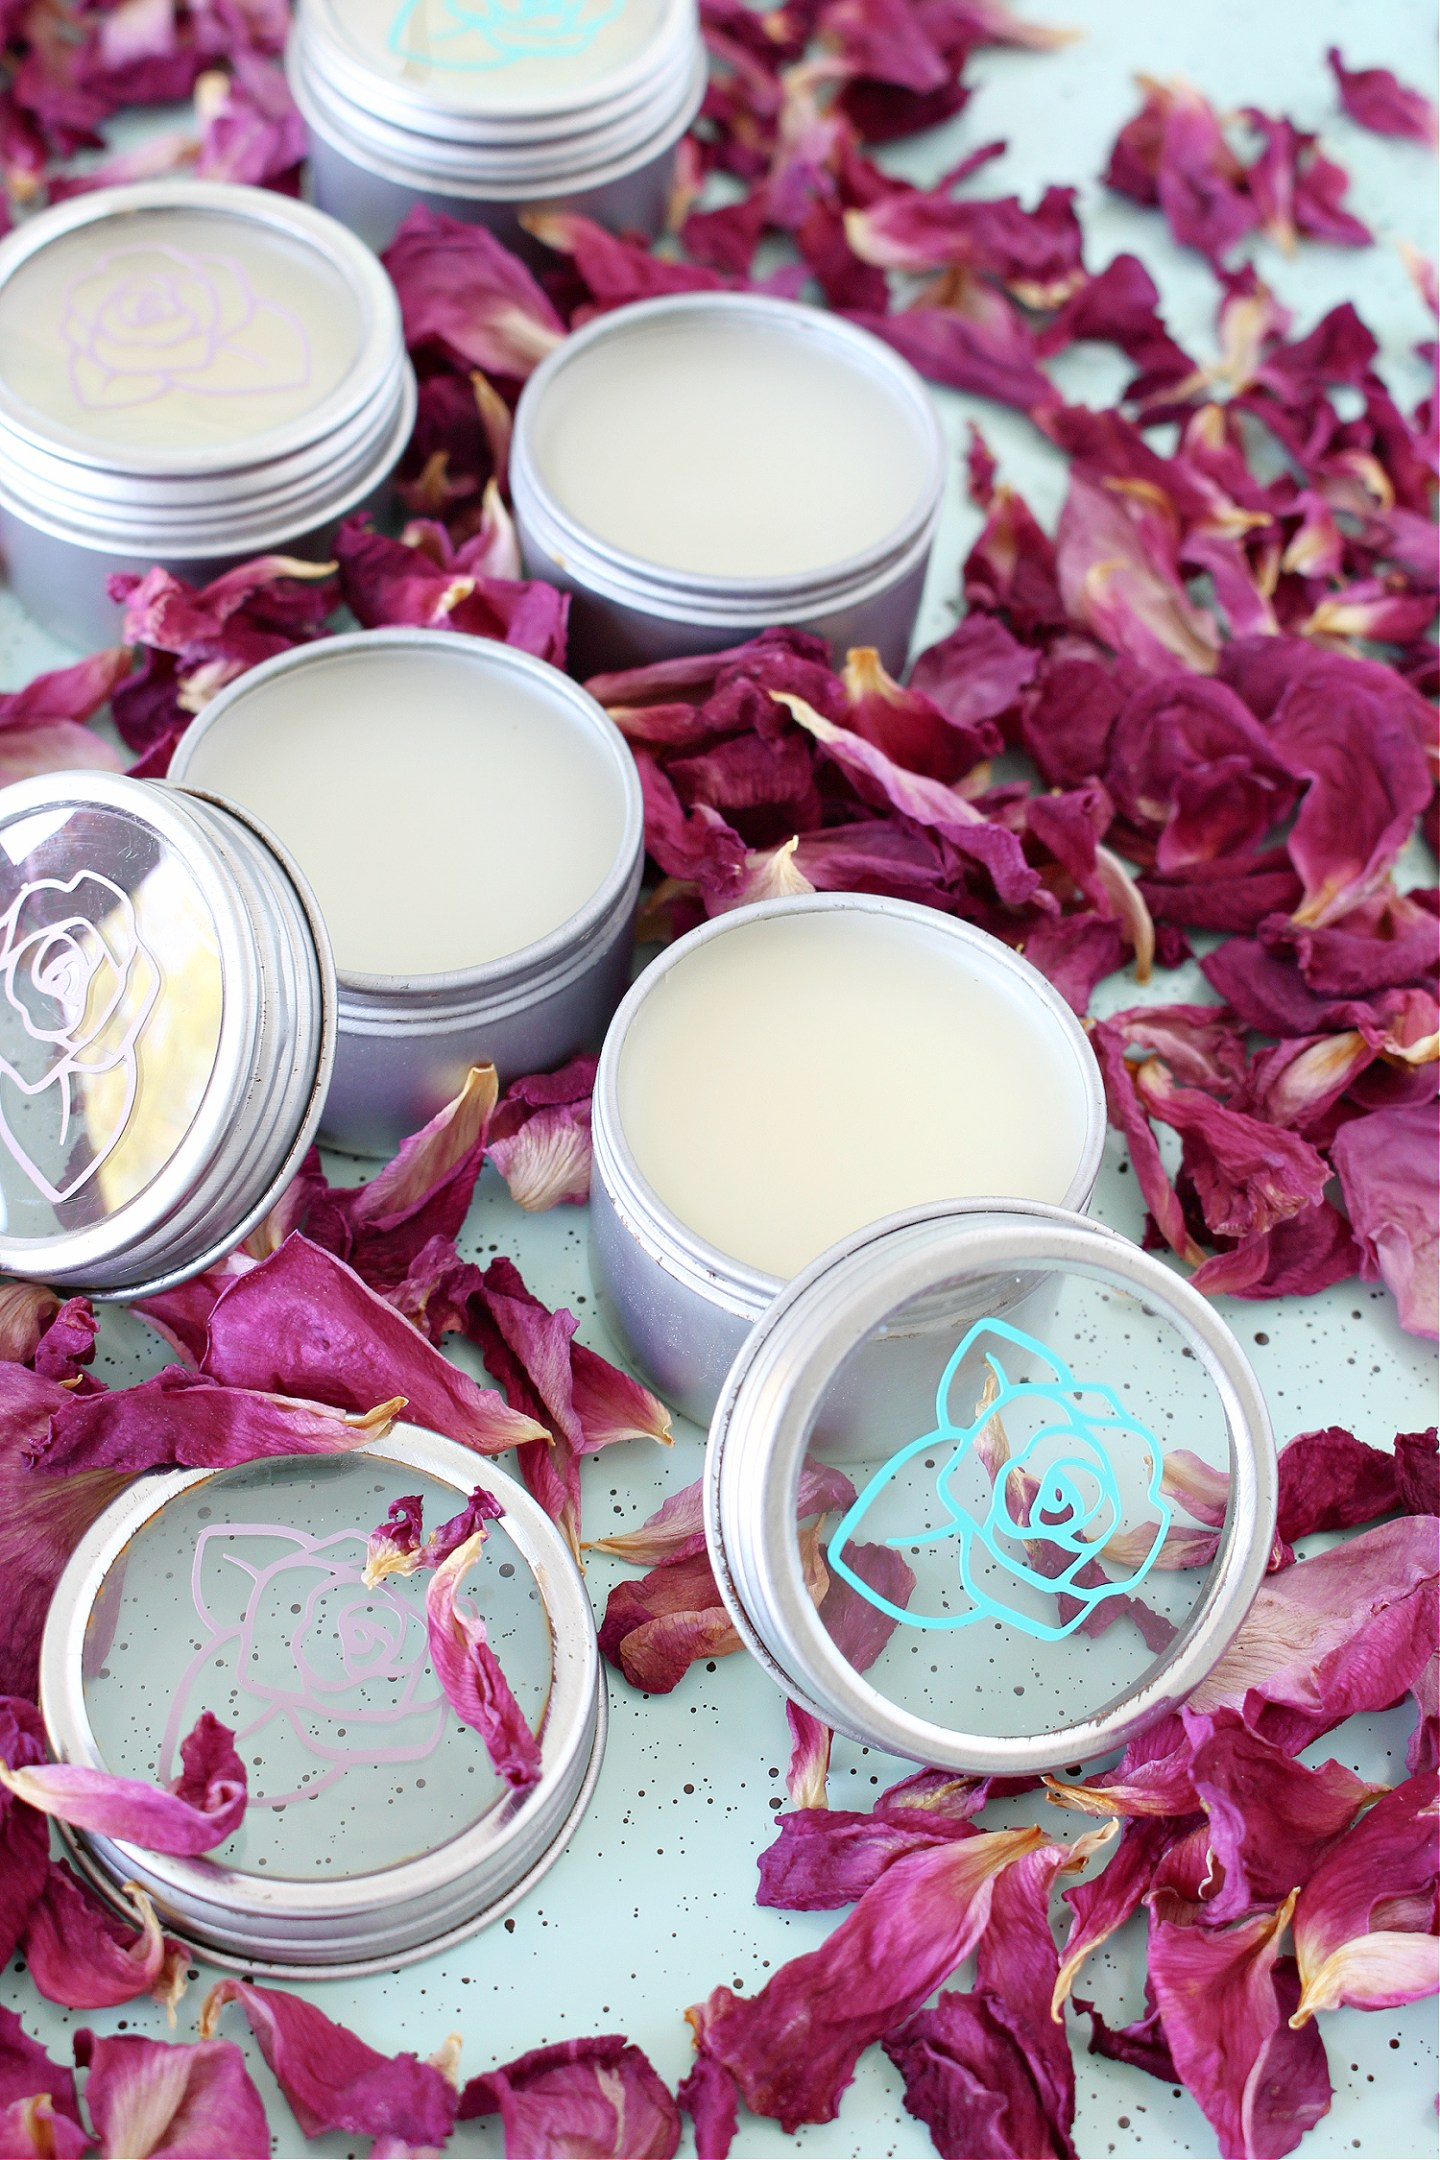 Homemade Rose Skin Products